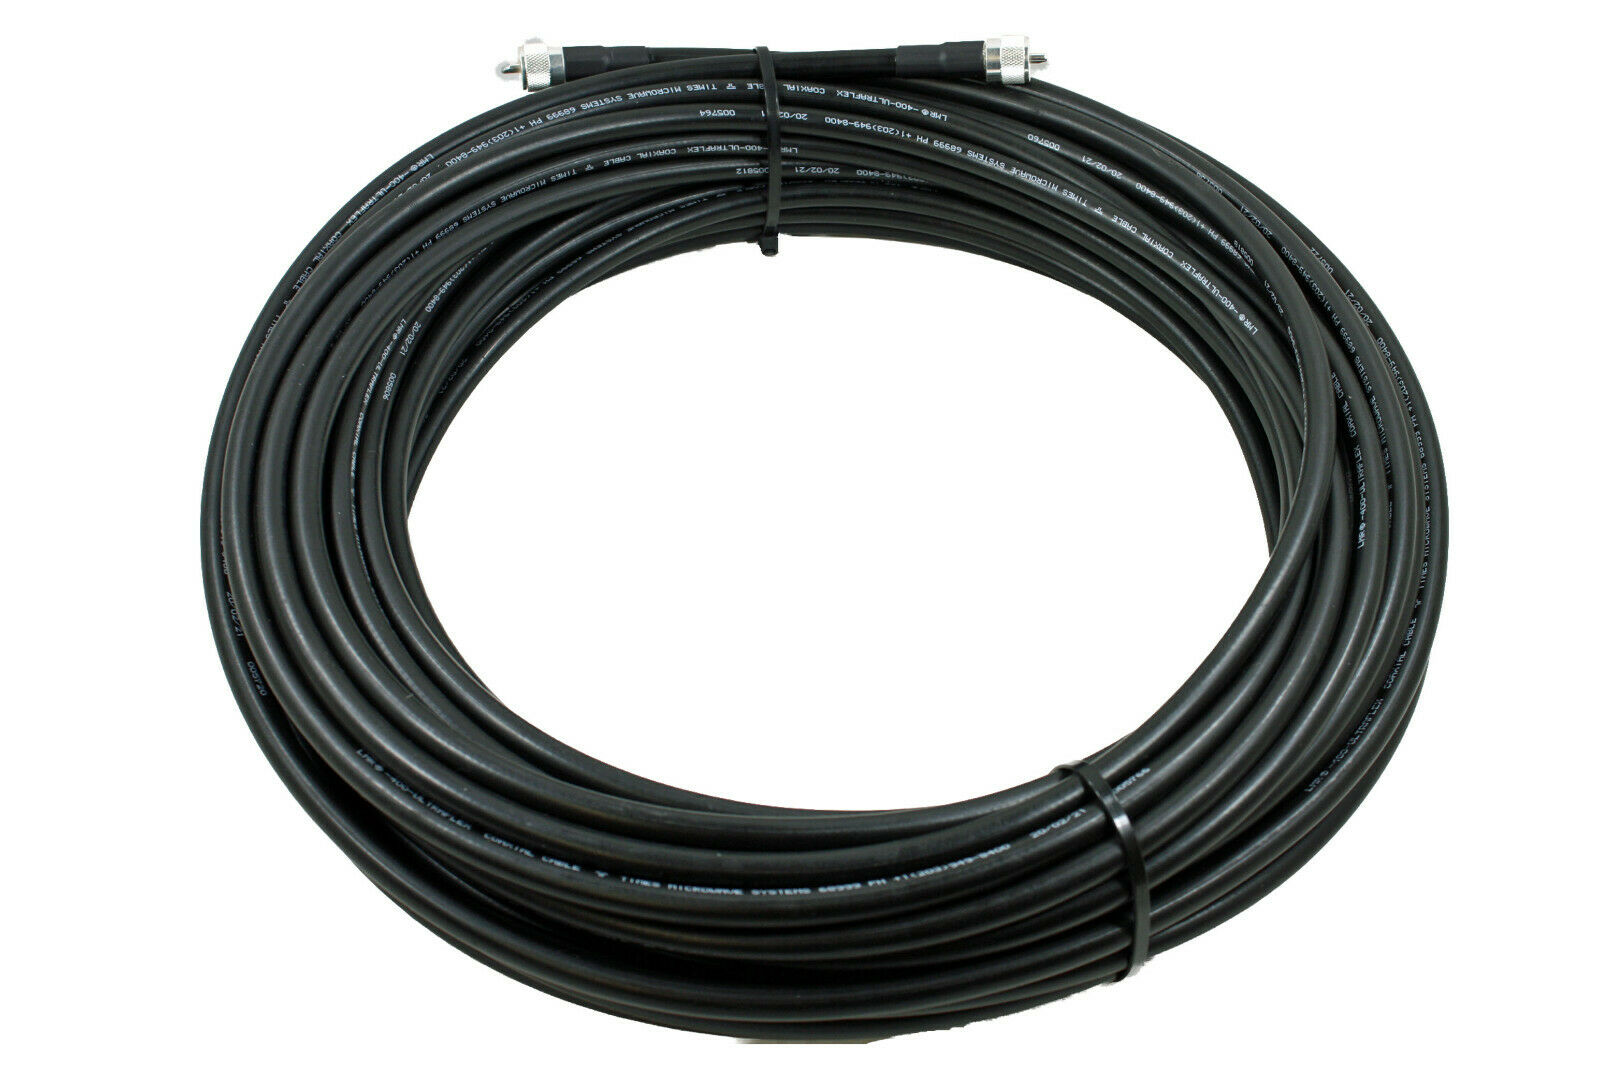 Times Microwave LMR-400UF Ultra Flex Ham & CB Coax Cable 100ft w/PL-259 USA MADE. Available Now for 164.95